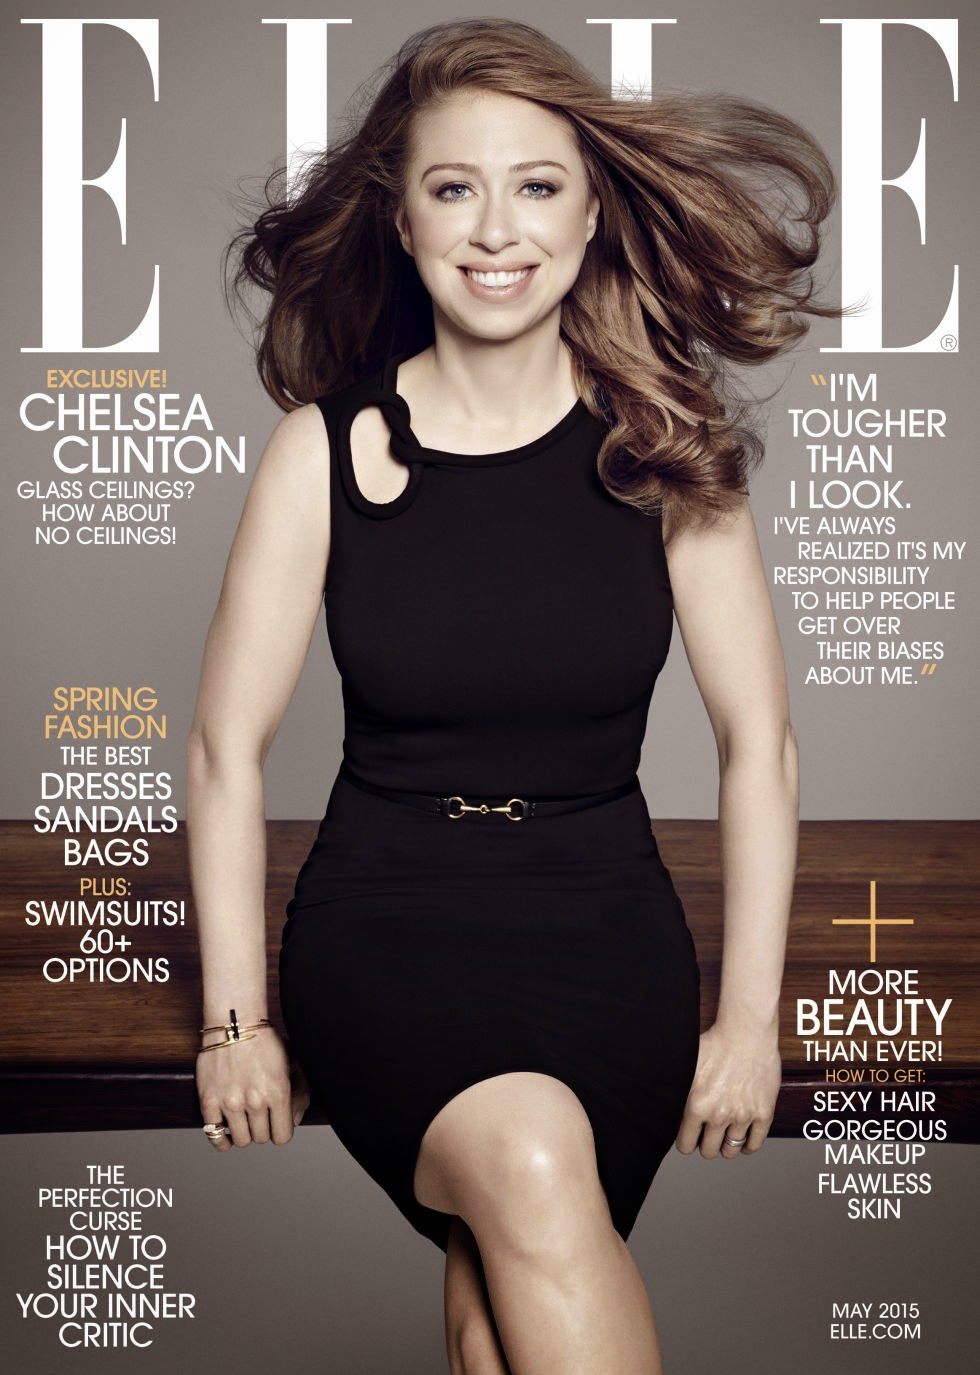 Mother Hillary Clinton @ Chelsea Clinton - Elle US, May 2015